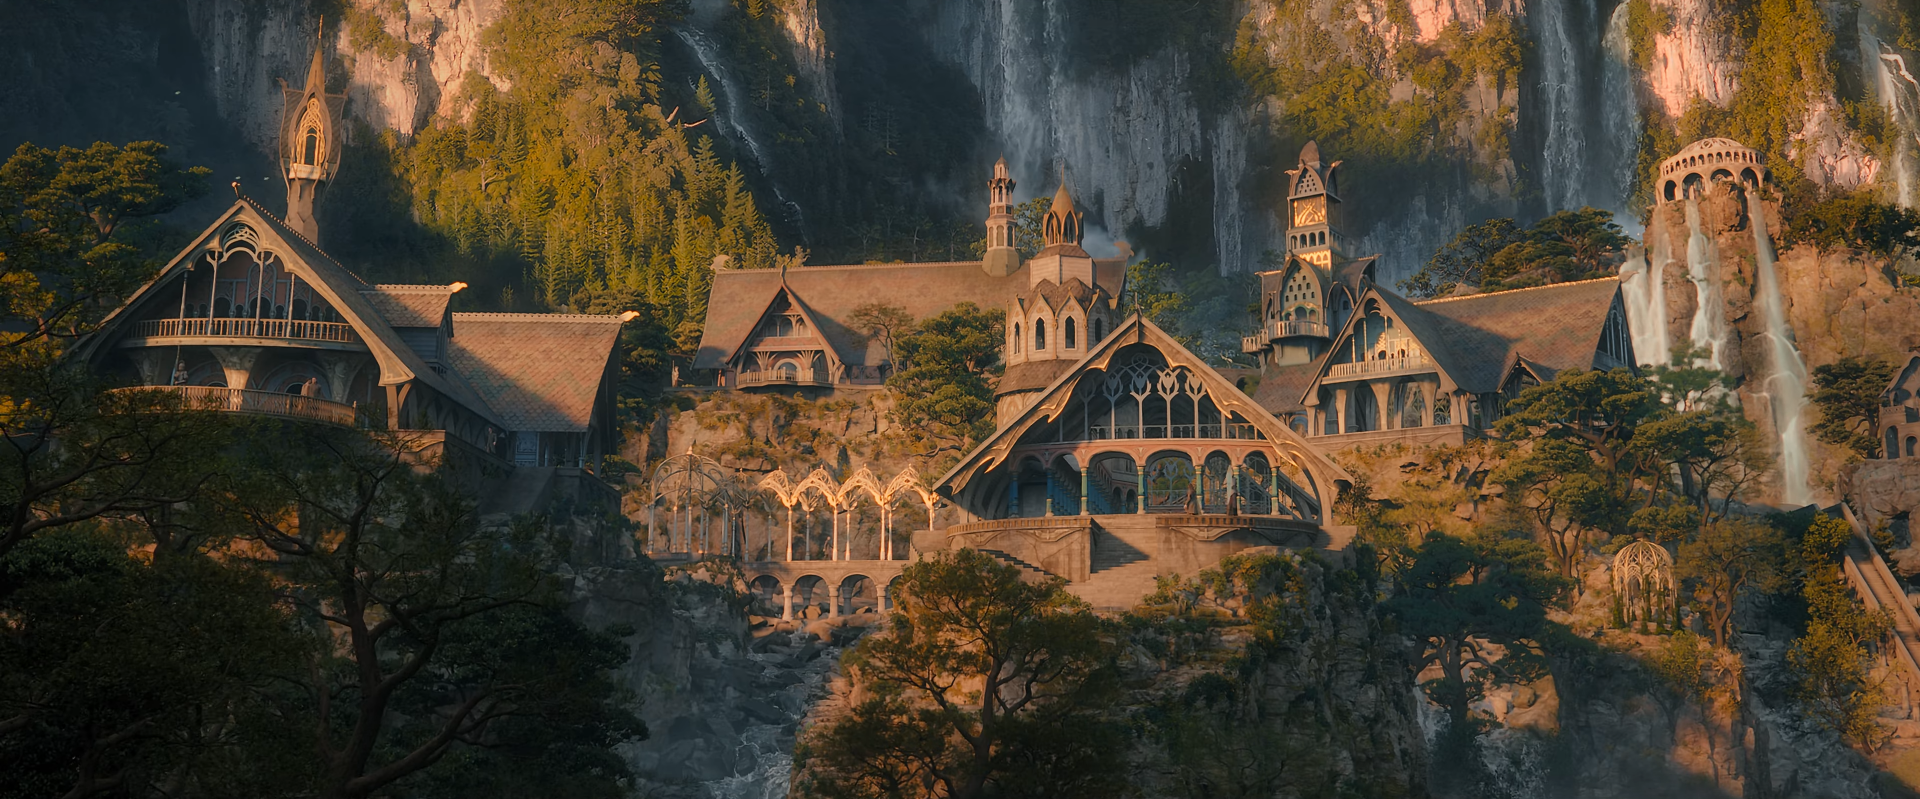 The hobbit - Vos avis  Rivendell_-_The_Hobbit